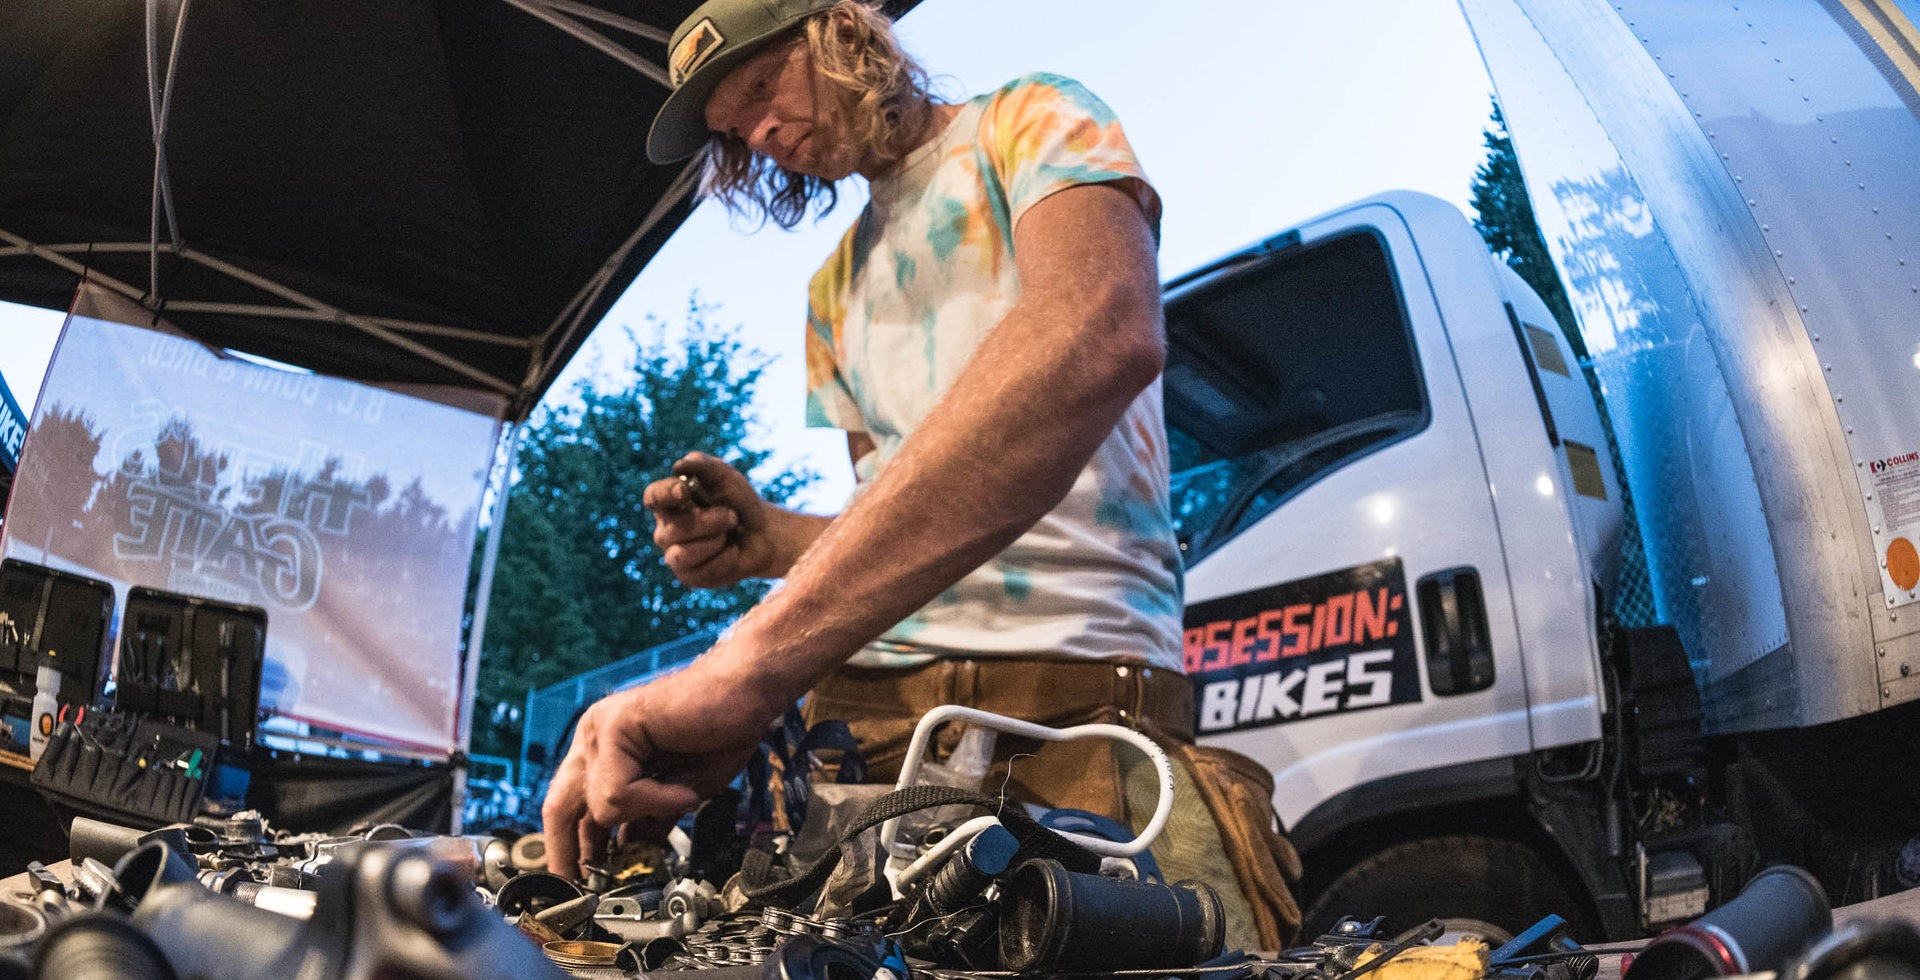 Every problem is solved one part at a time. Newton finds some suitable bearing replacements for a bottom bracket at the BC Bike Race.